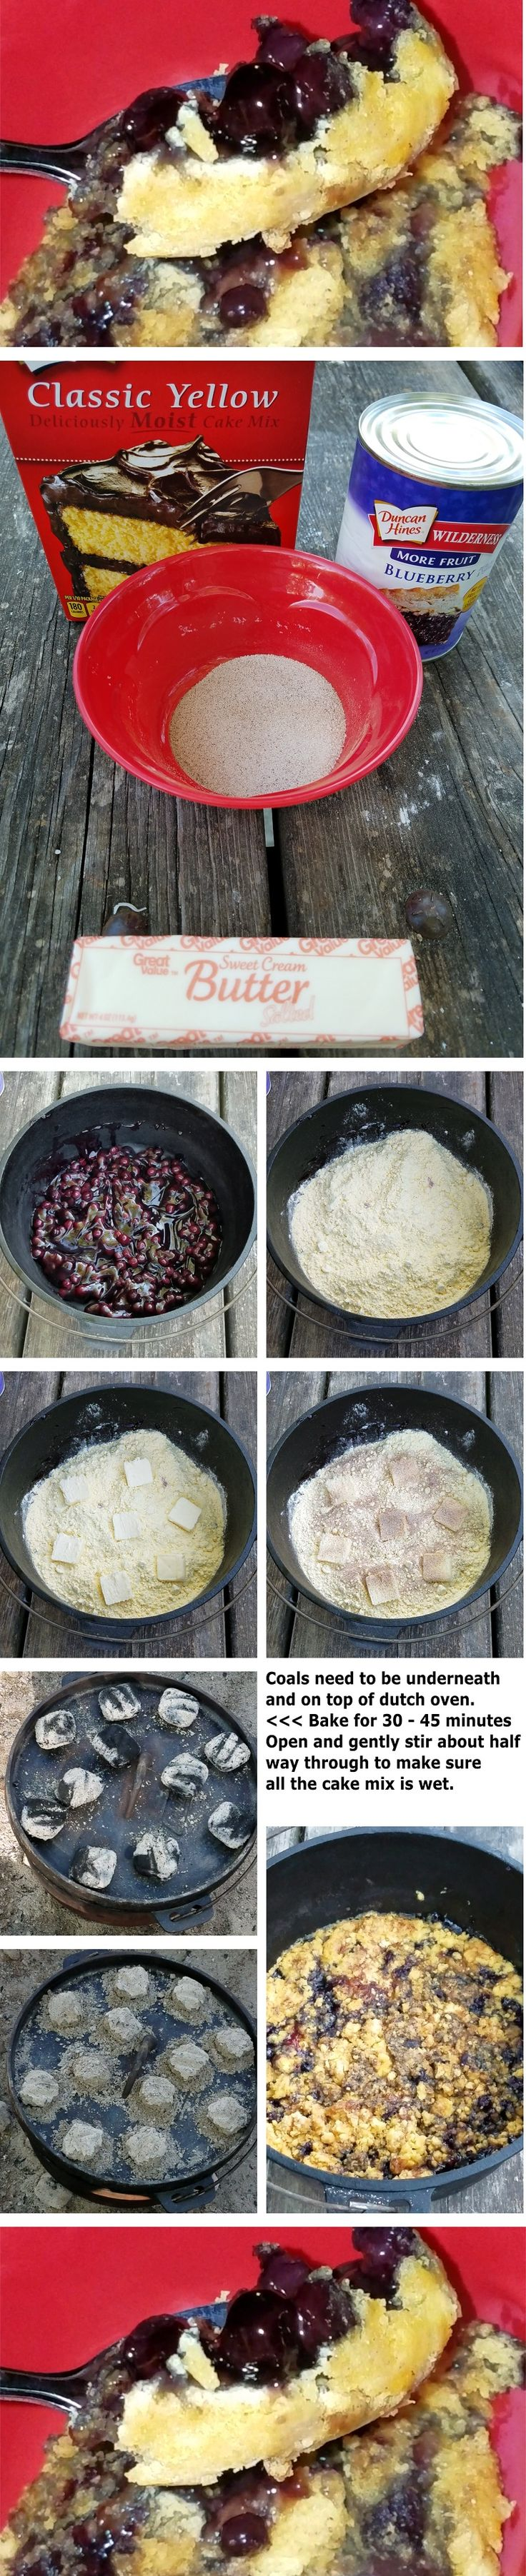 Super easy to make blueberry cobbler in a dutch oven.  Great for camp!